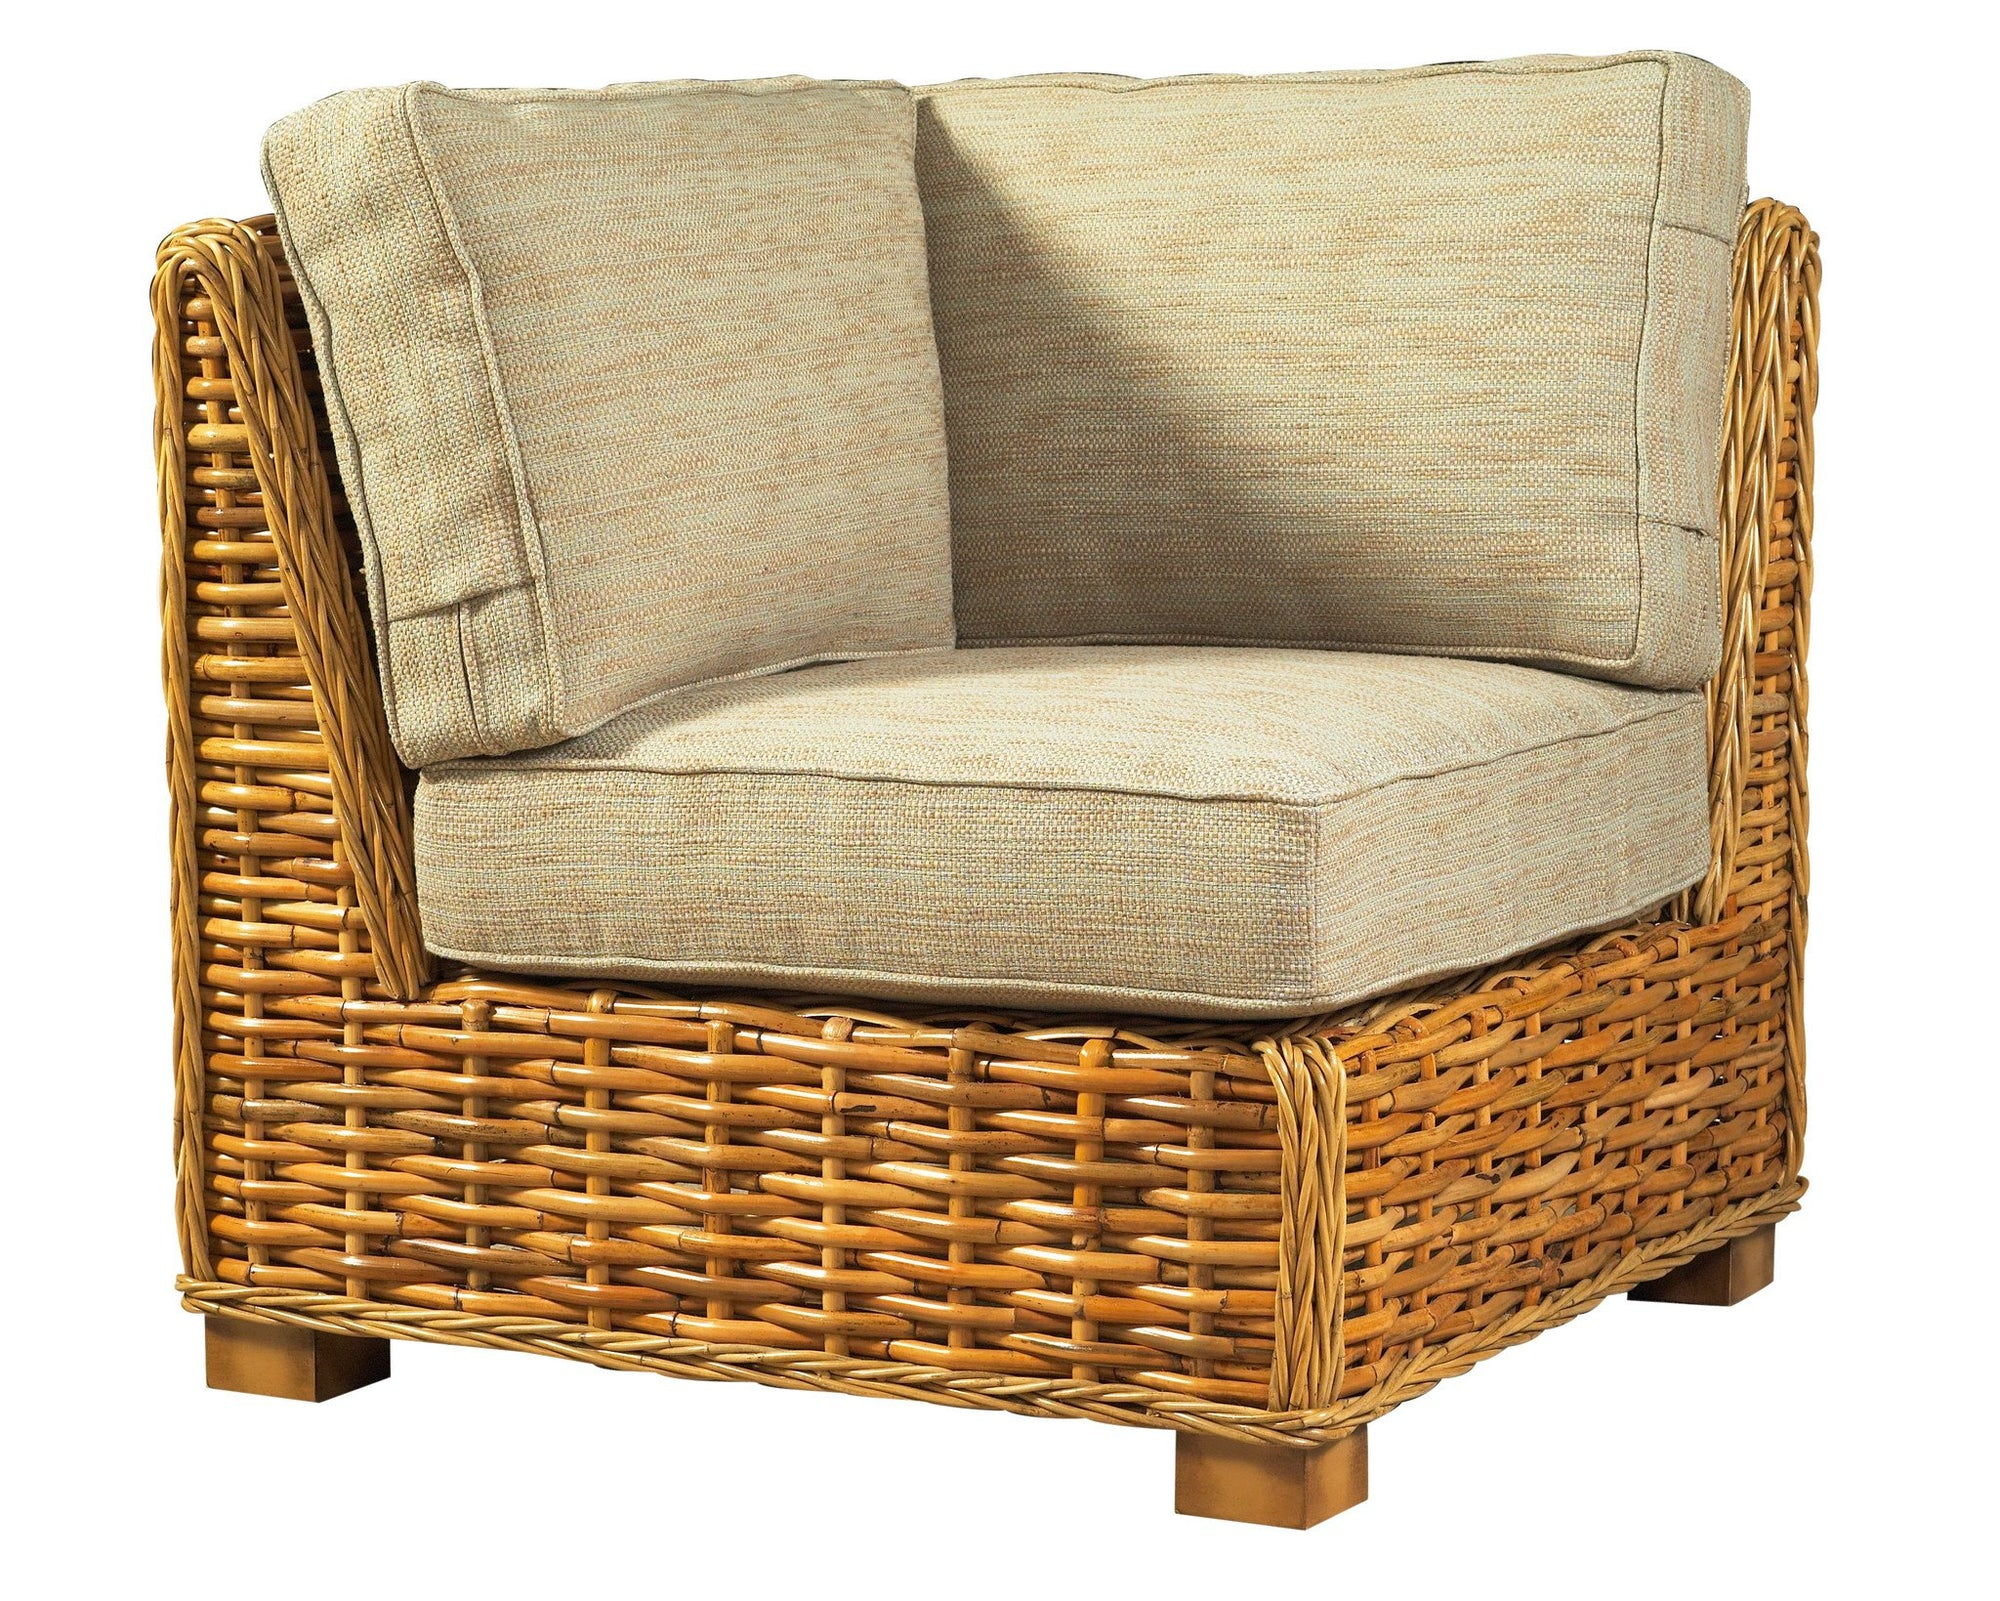 Designer Wicker & Rattan By Tribor Freeport Sectional Corner by Designer Wicker from Tribor Sectional - Rattan Imports